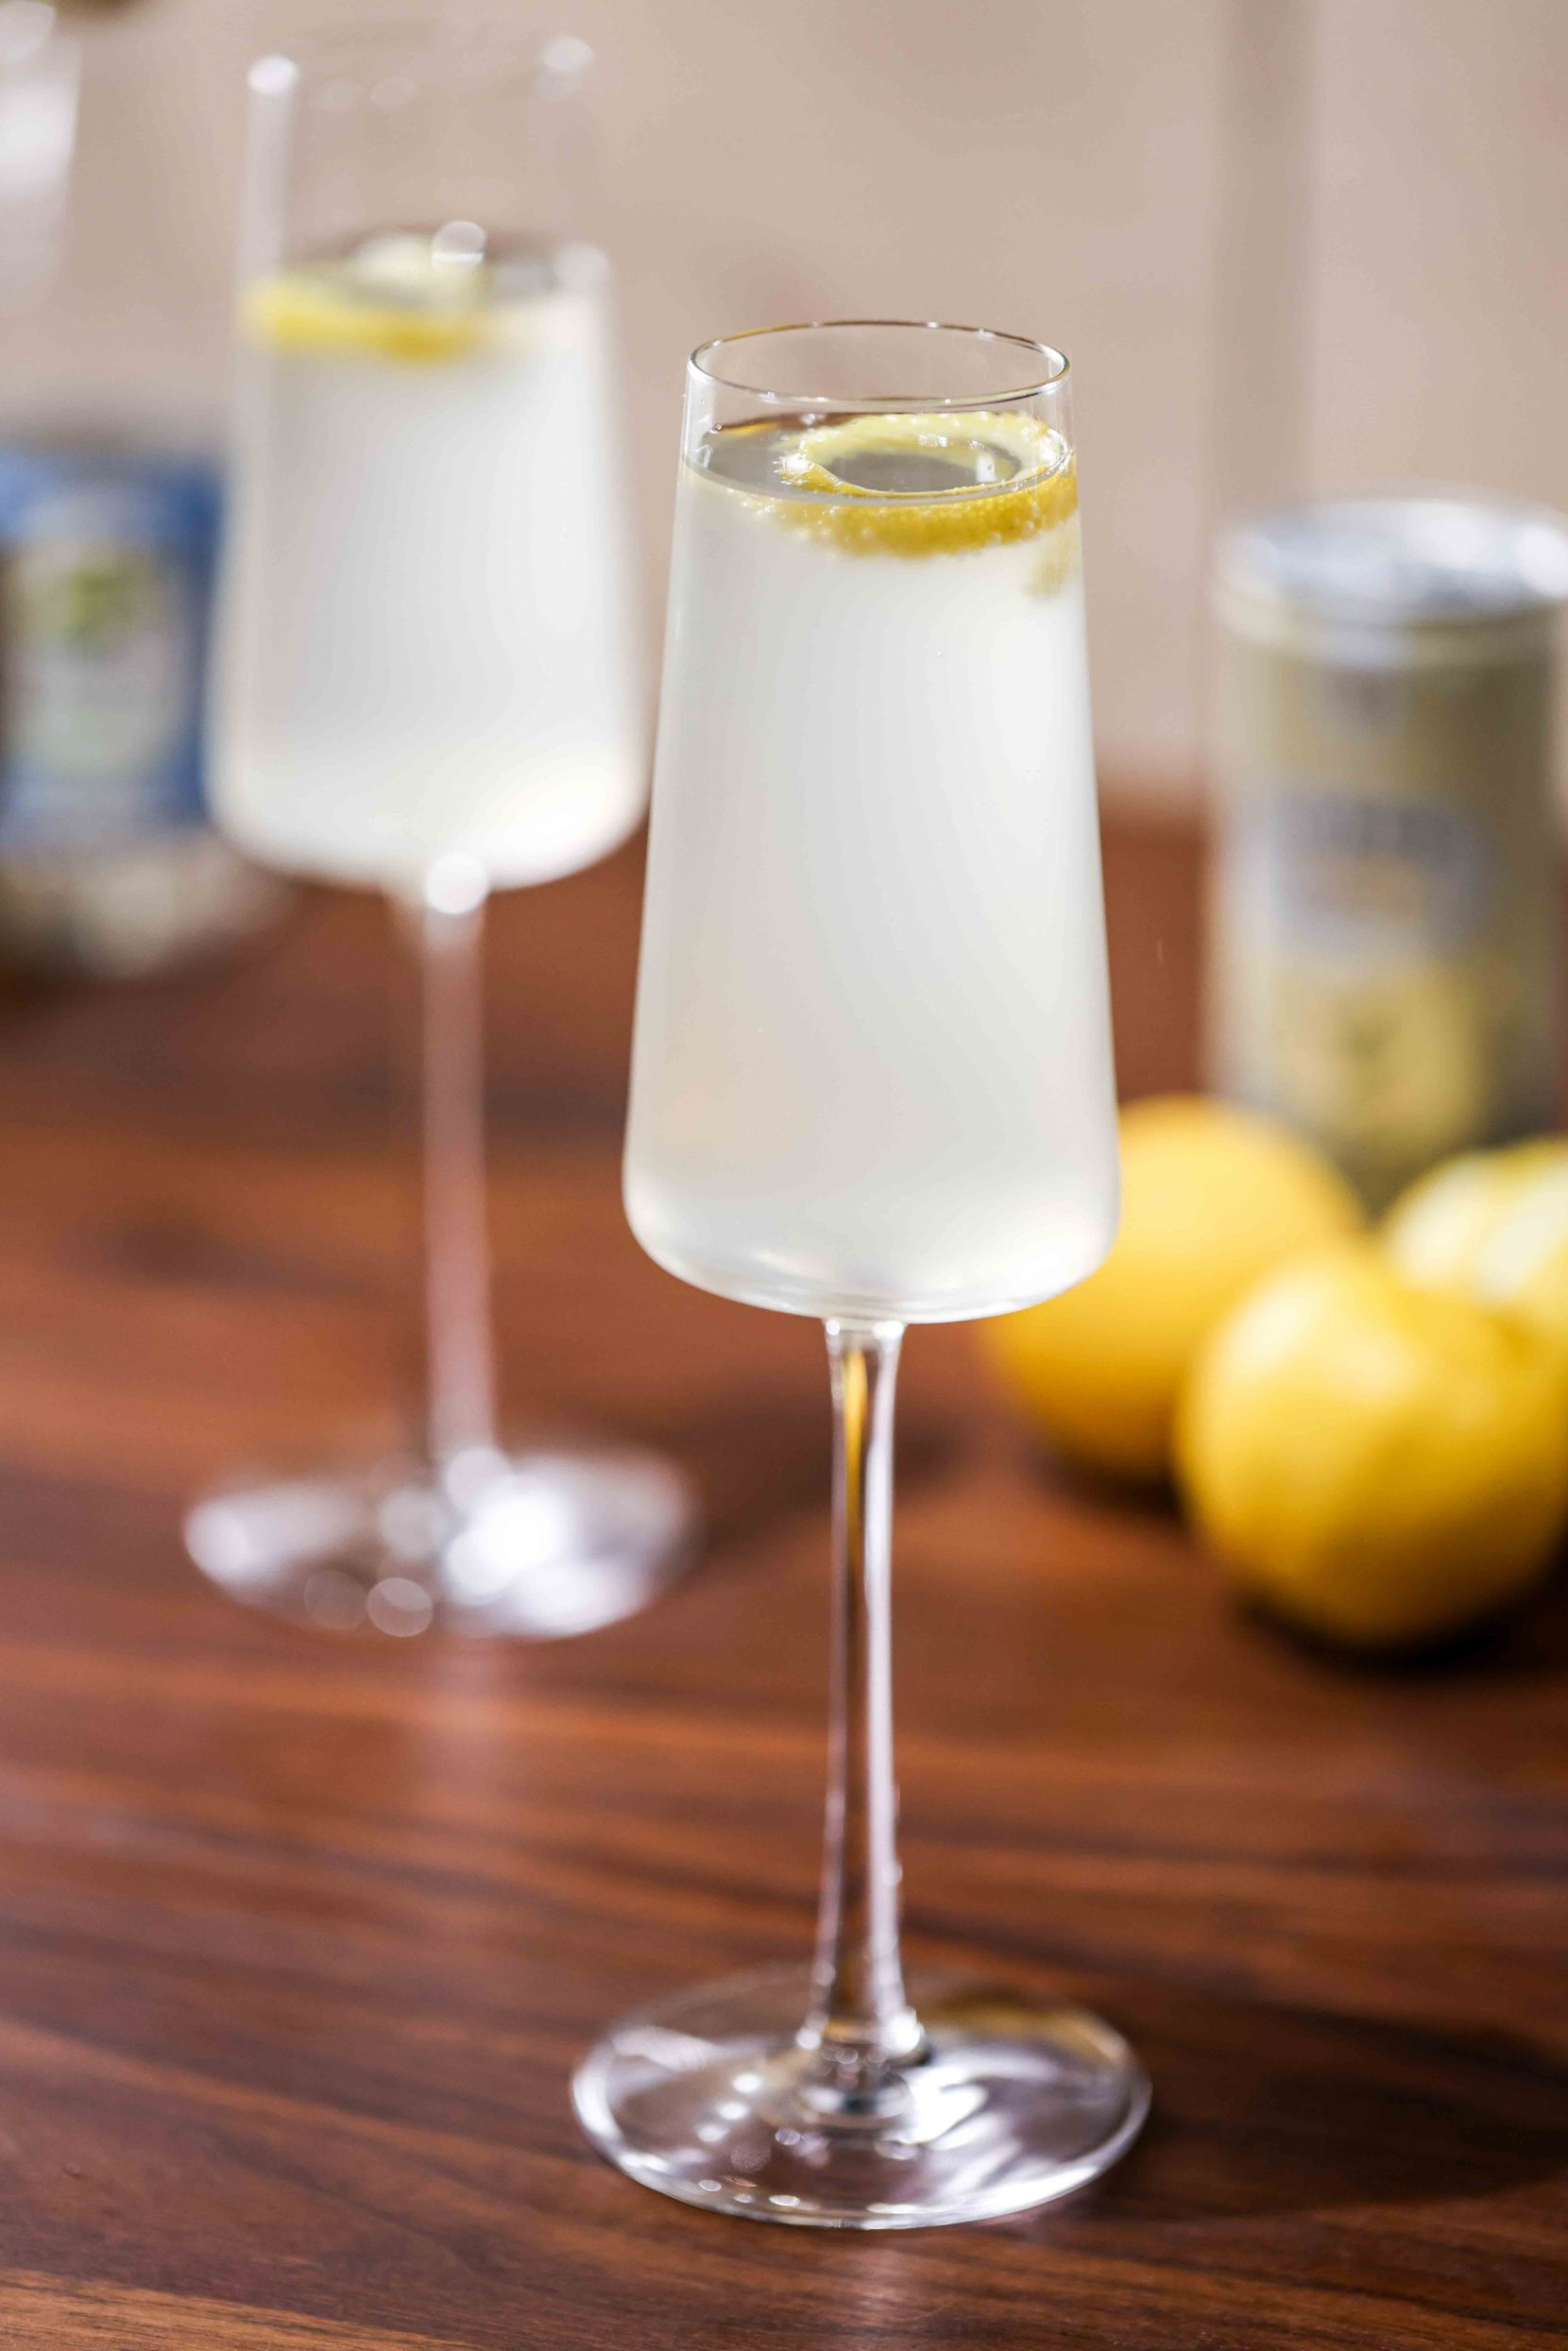 French 86, an alcohol-free beverage by Beth Hutson from The Elevated Elixir